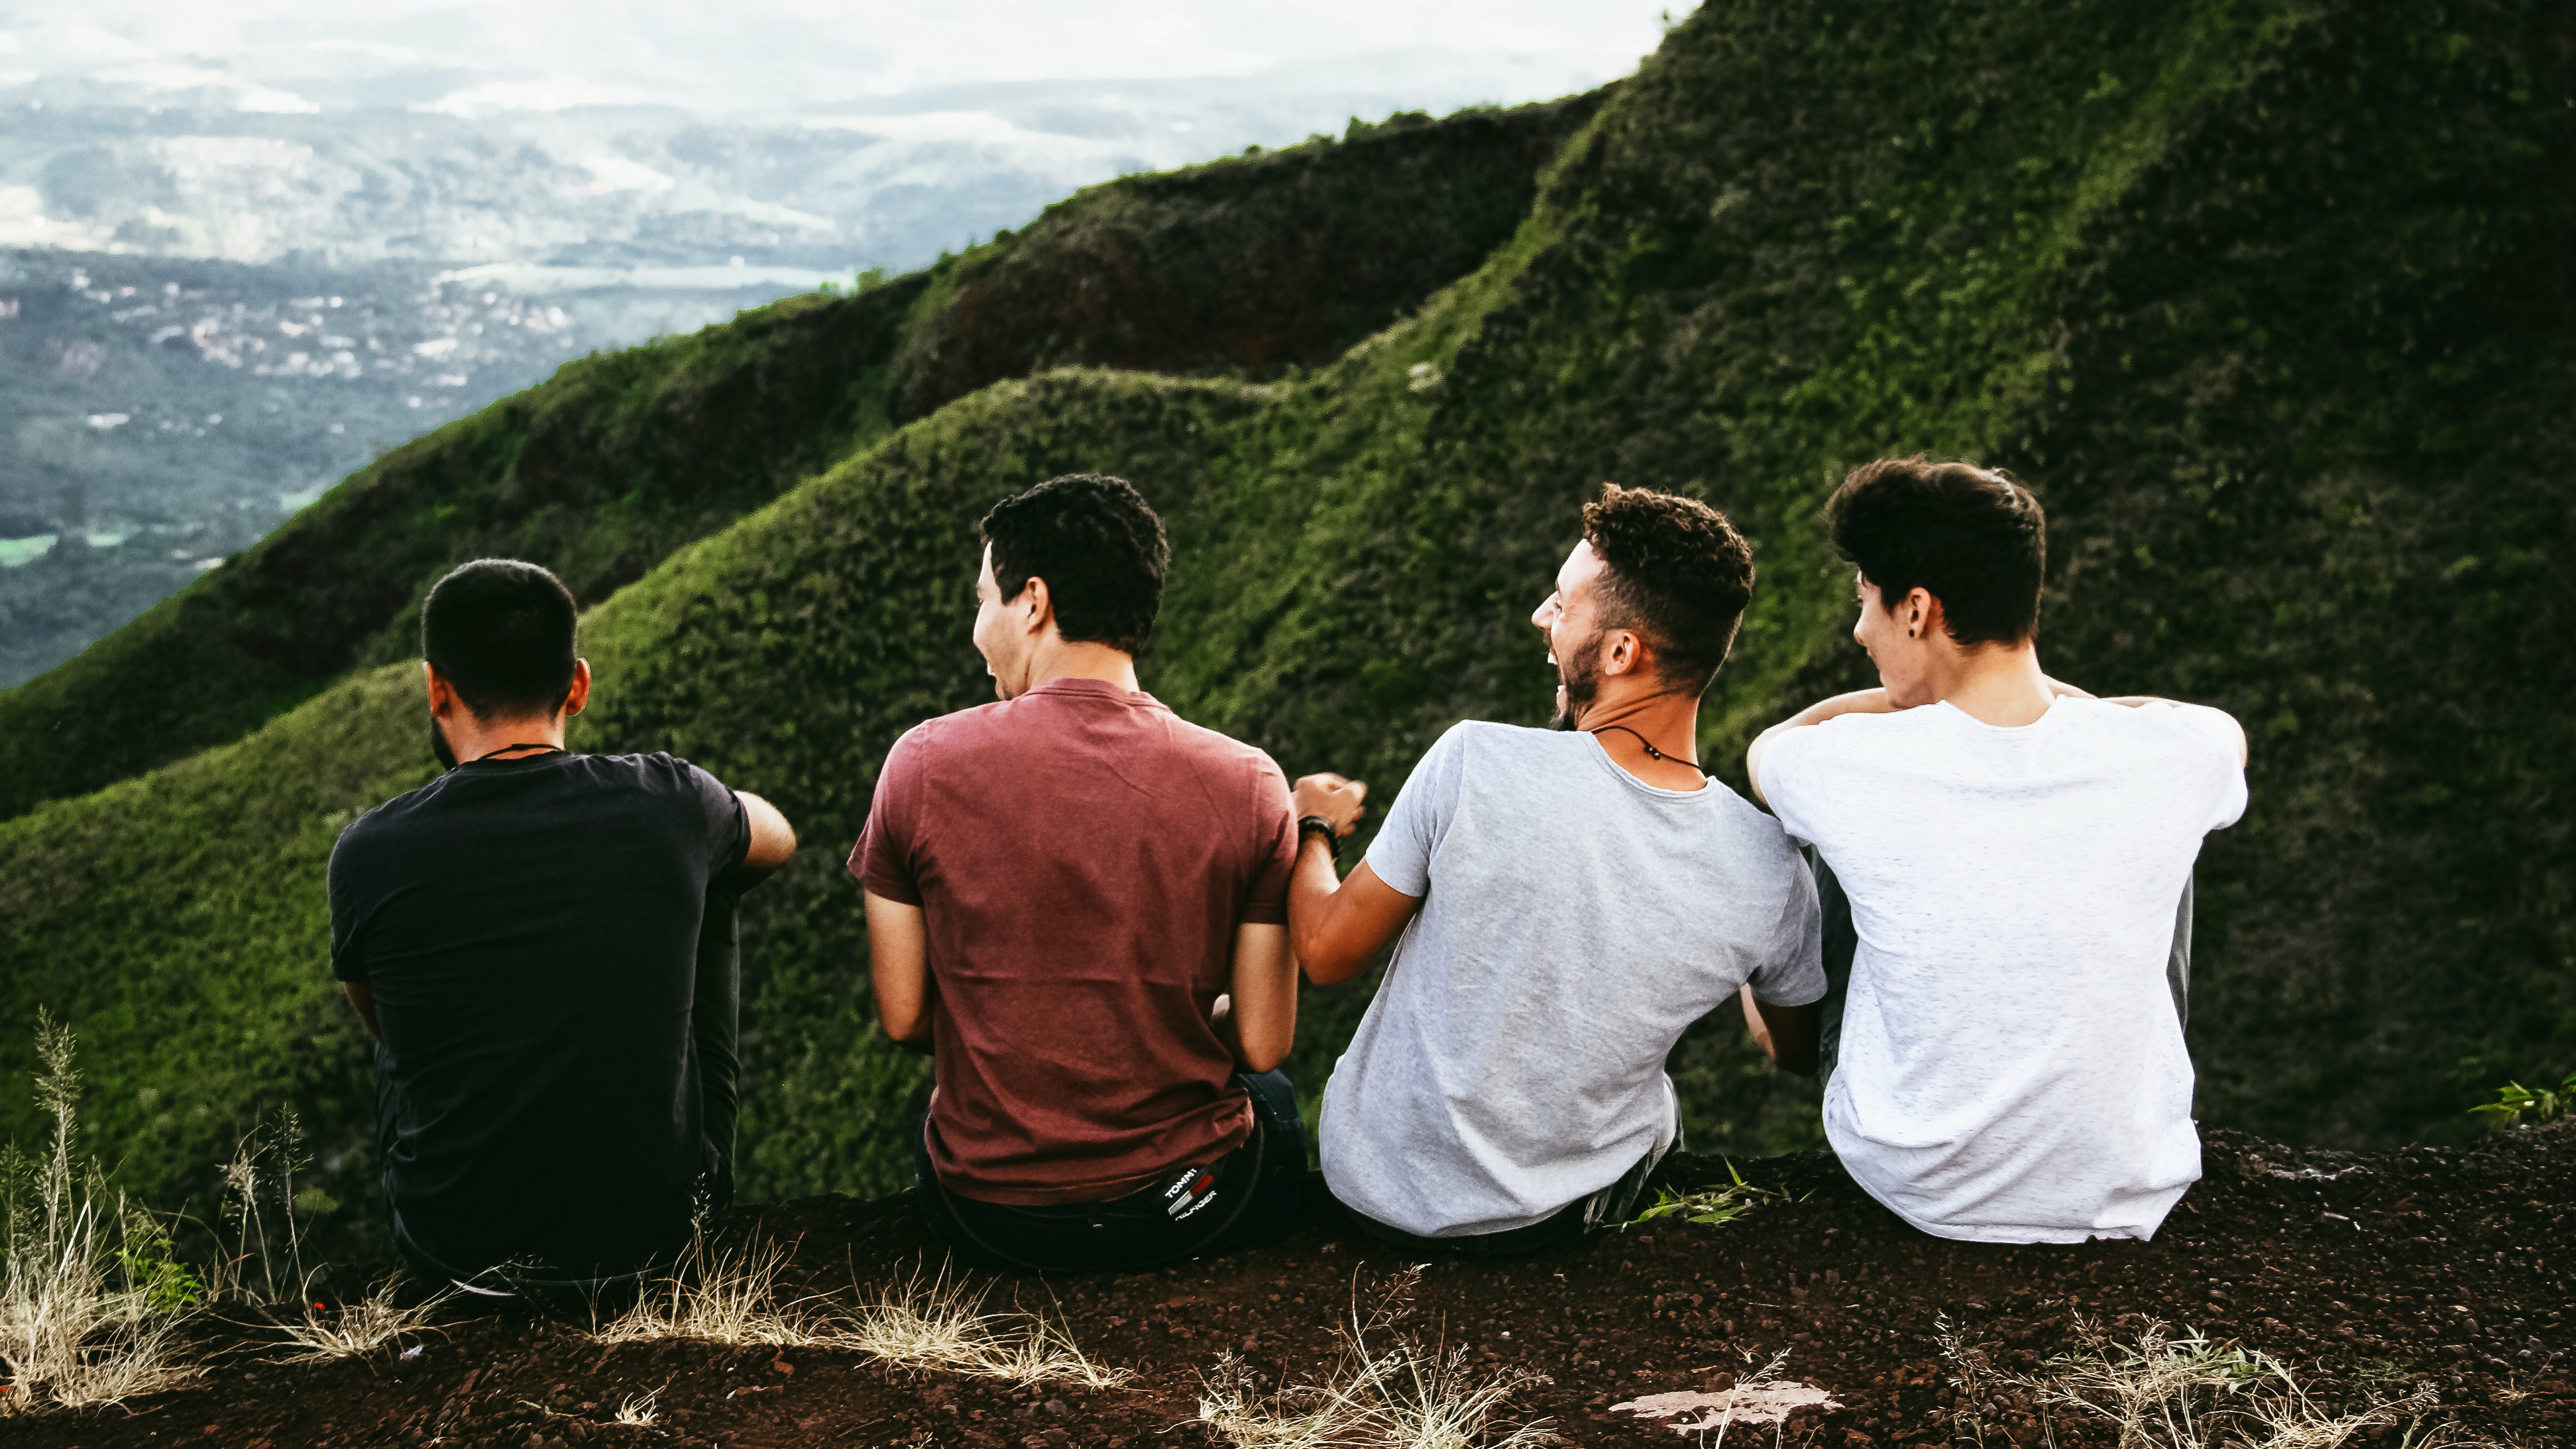 Four boys sitting and laughing.